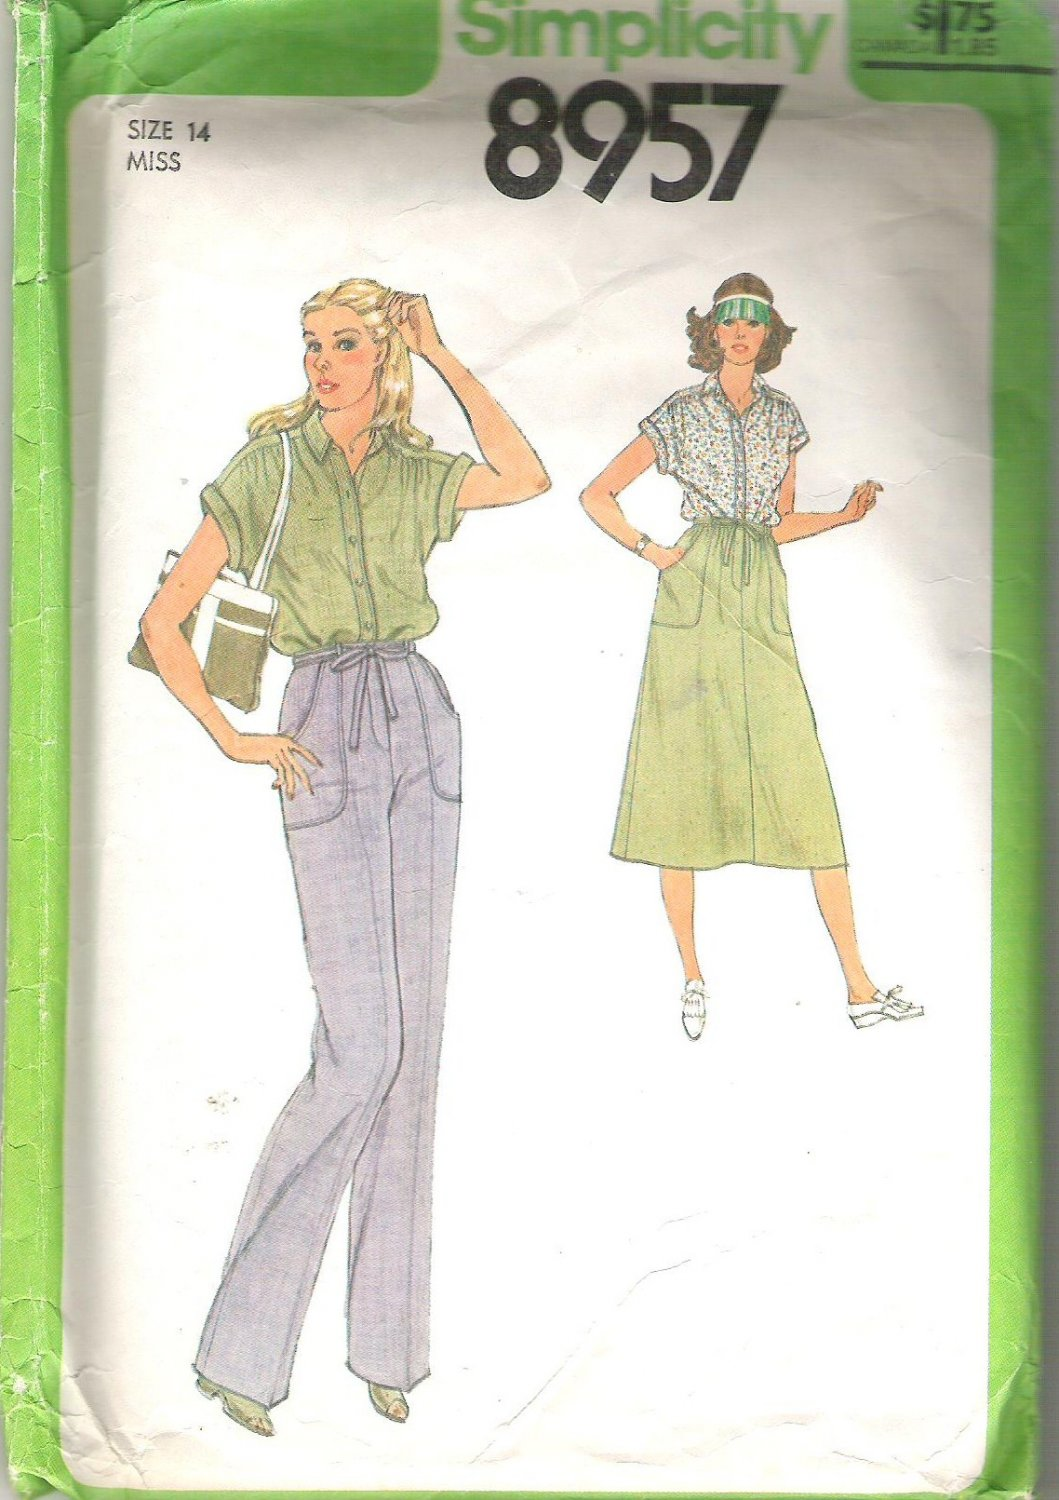 1979 Simplicity 8957 Pattern Short Sleeve Blouse Skirt and Pants with Slant Pockets  Size 14 Cut